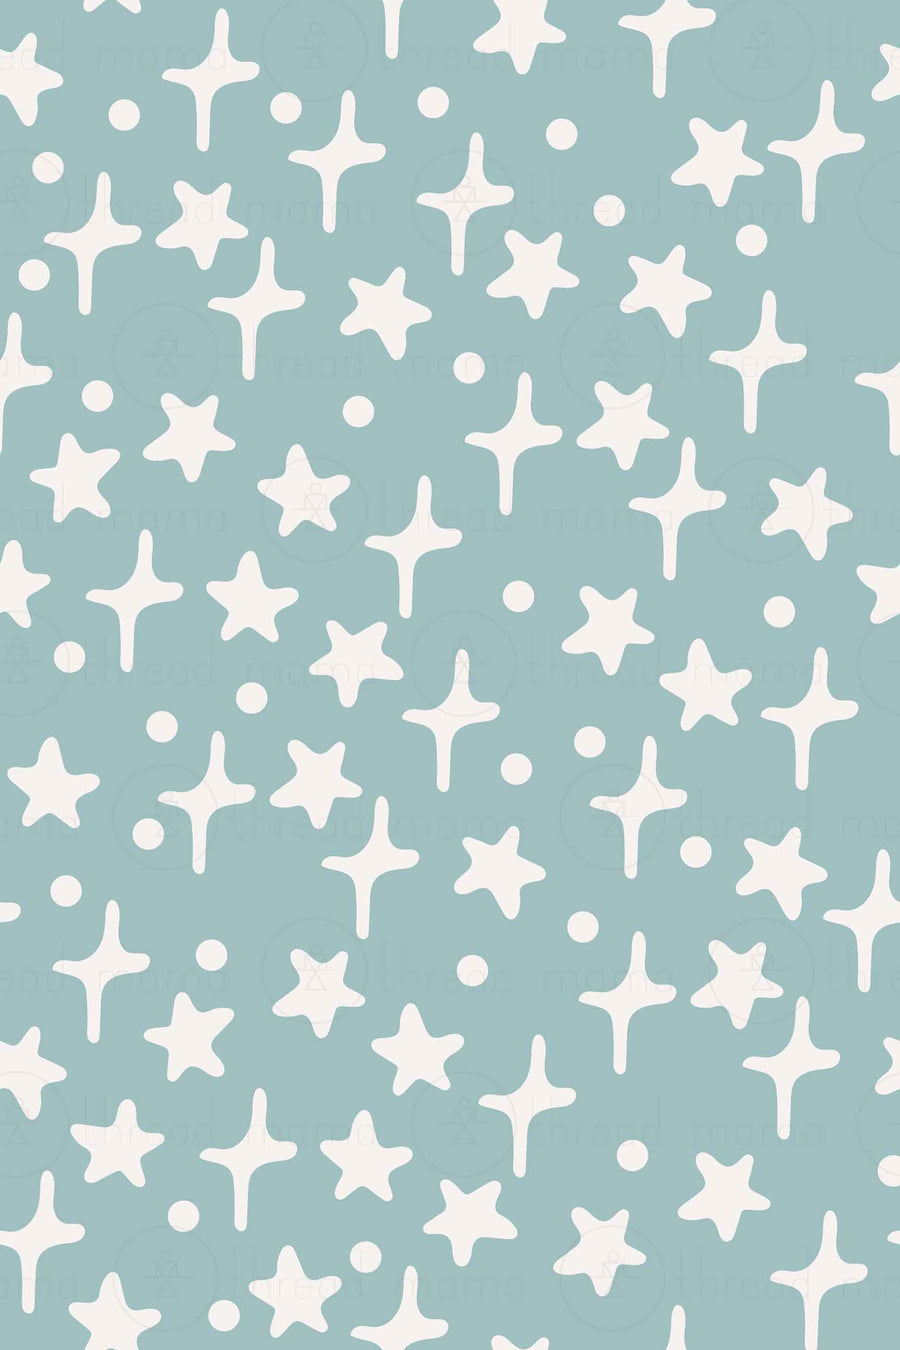 Repeating Pattern 59 (Seamless)